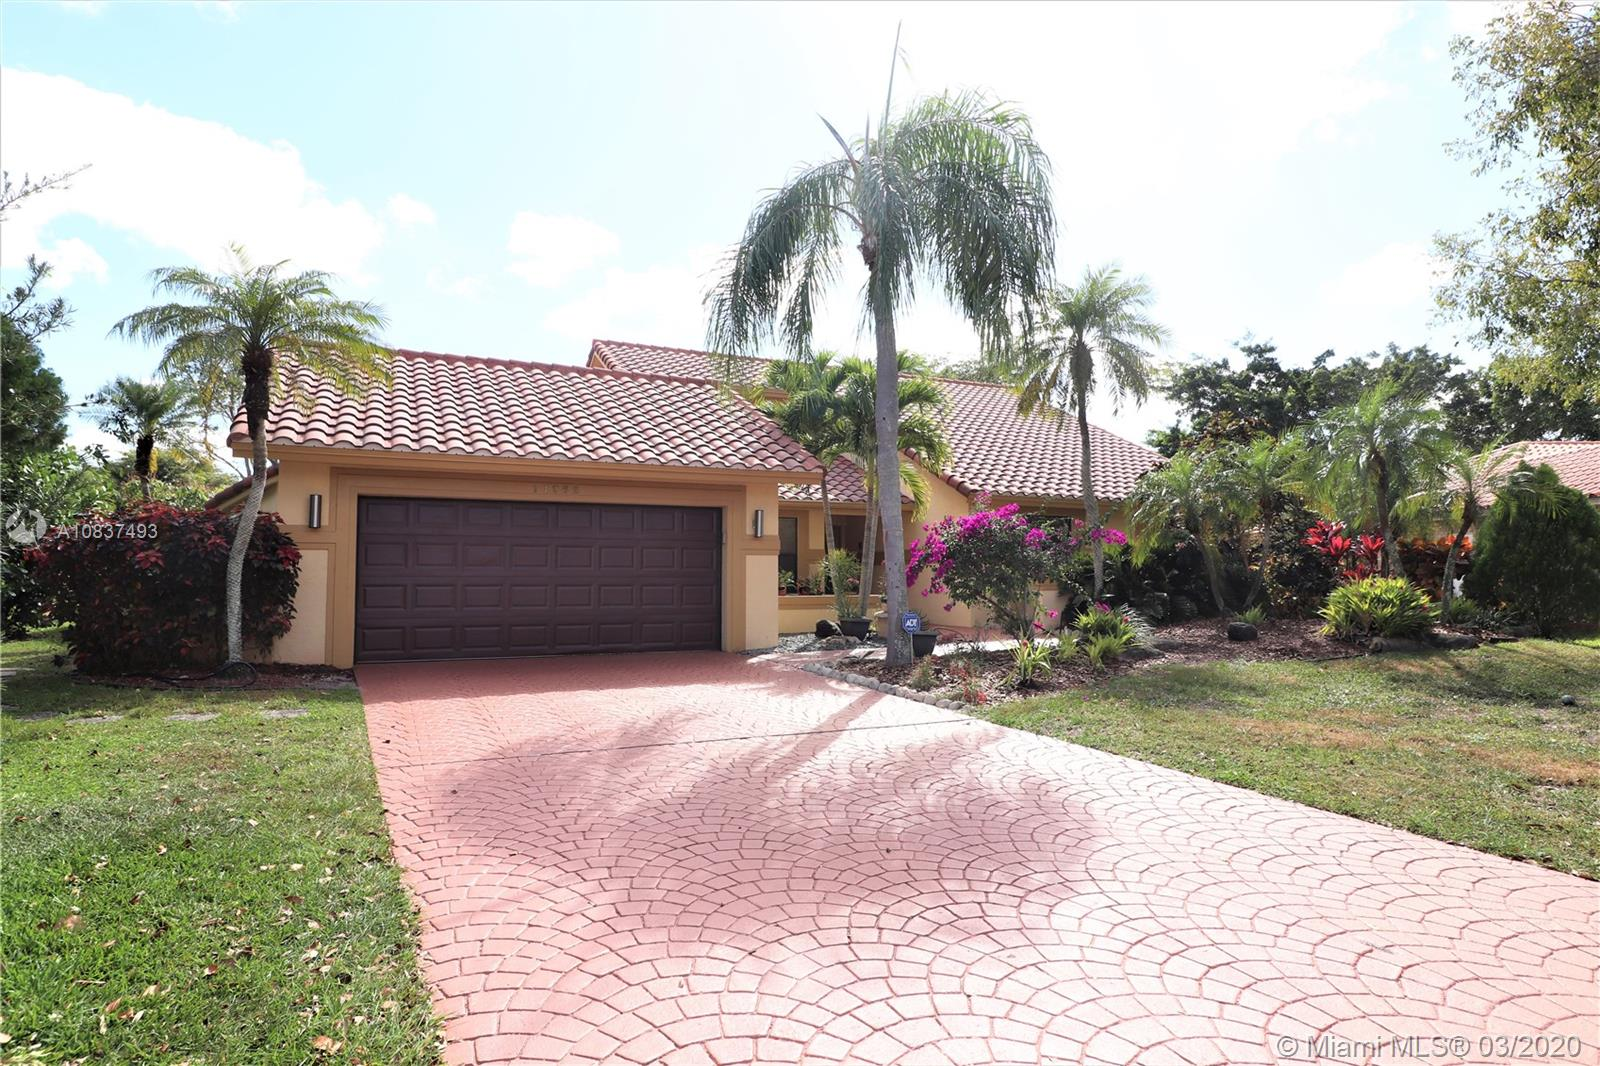 11362 NW 10th Pl, Coral Springs, FL 33071